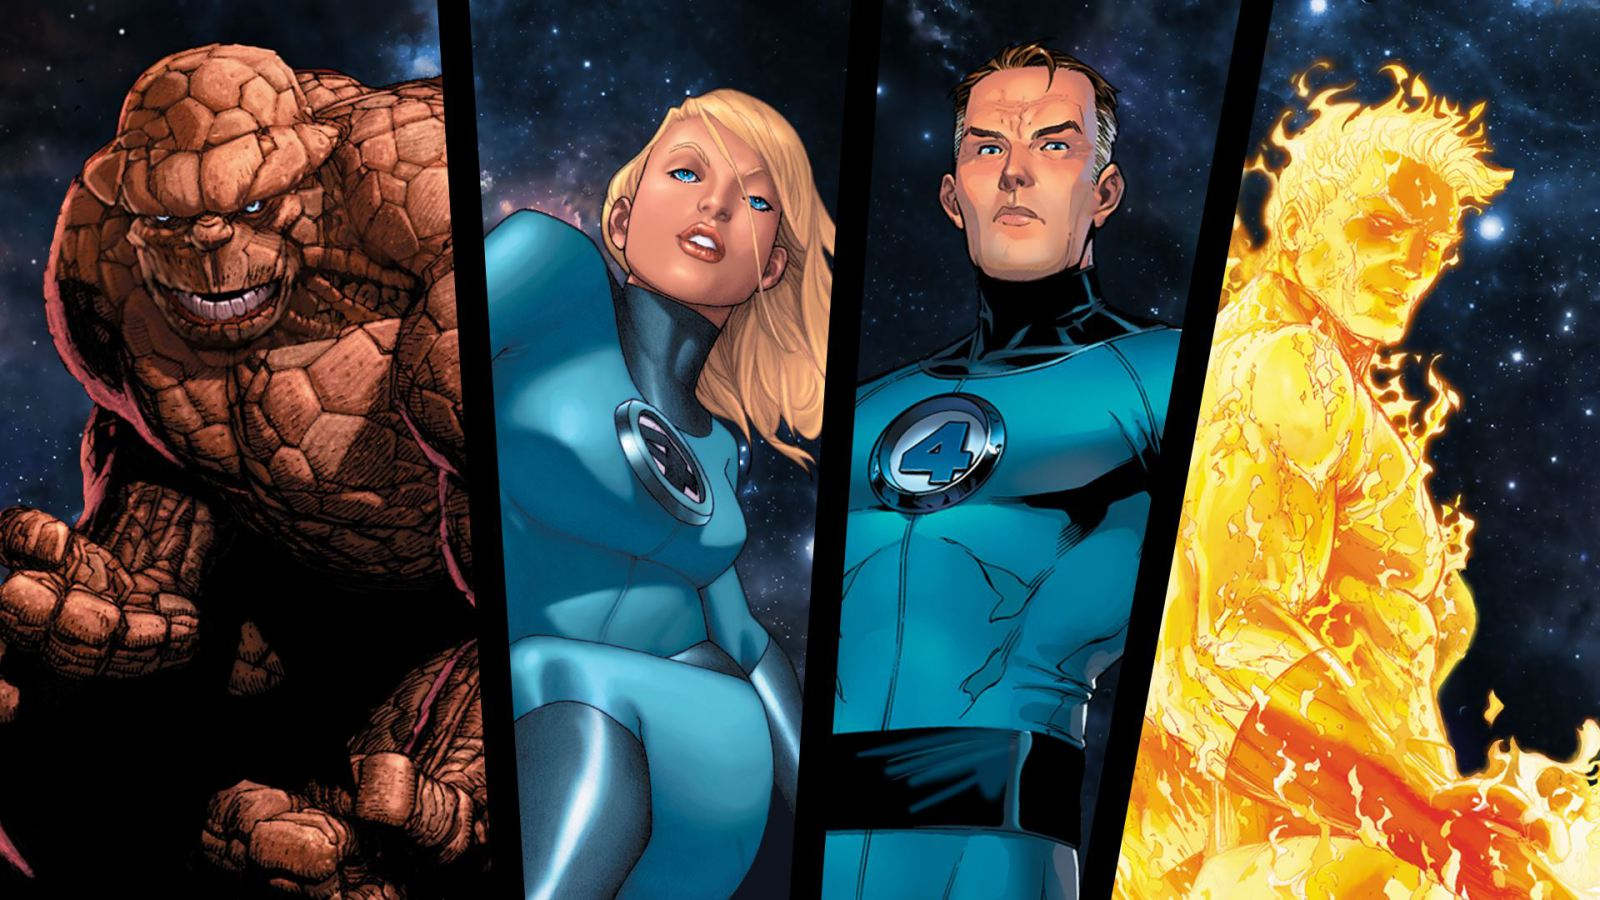 Fantastic Four Wallpapers, HD Quality Pictures